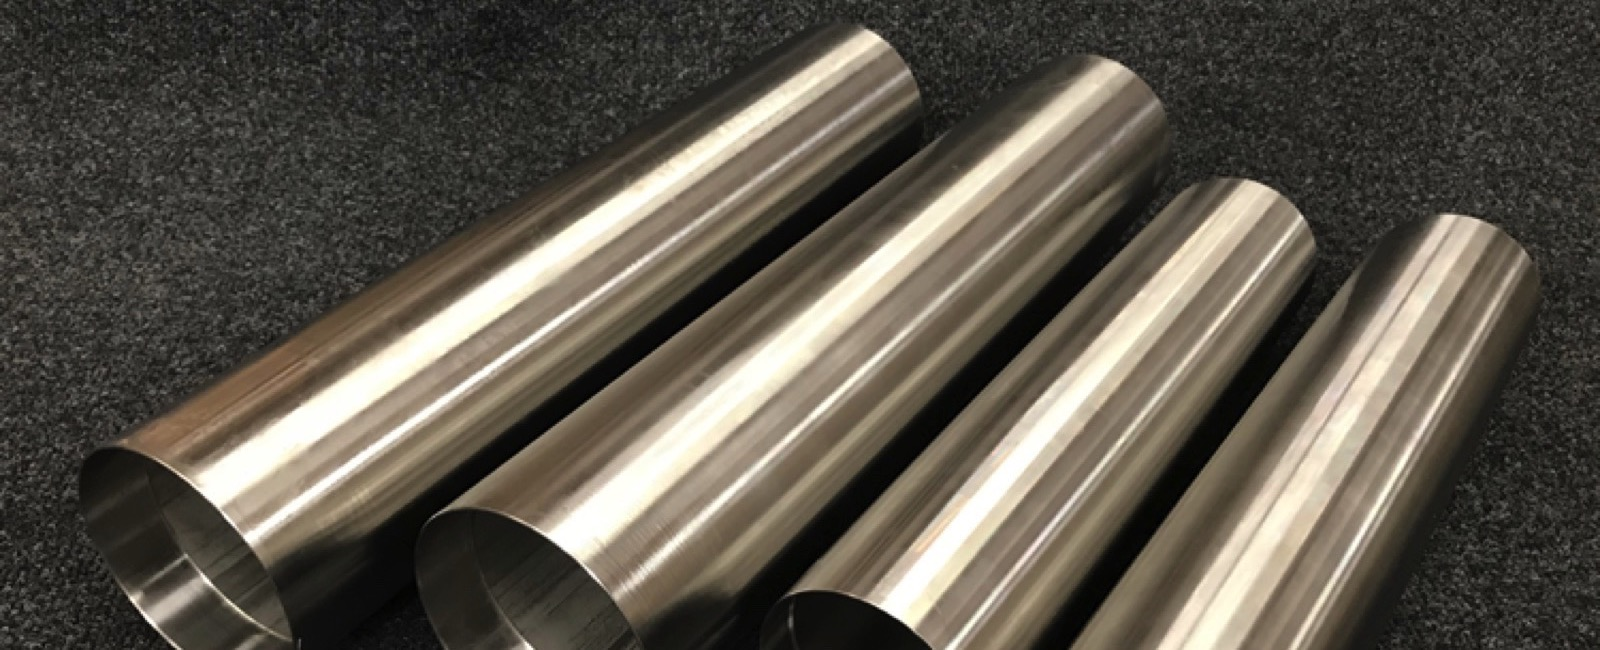 Rulmeca Starts Drum Motor Shell Production in Wilmington (NC), USA